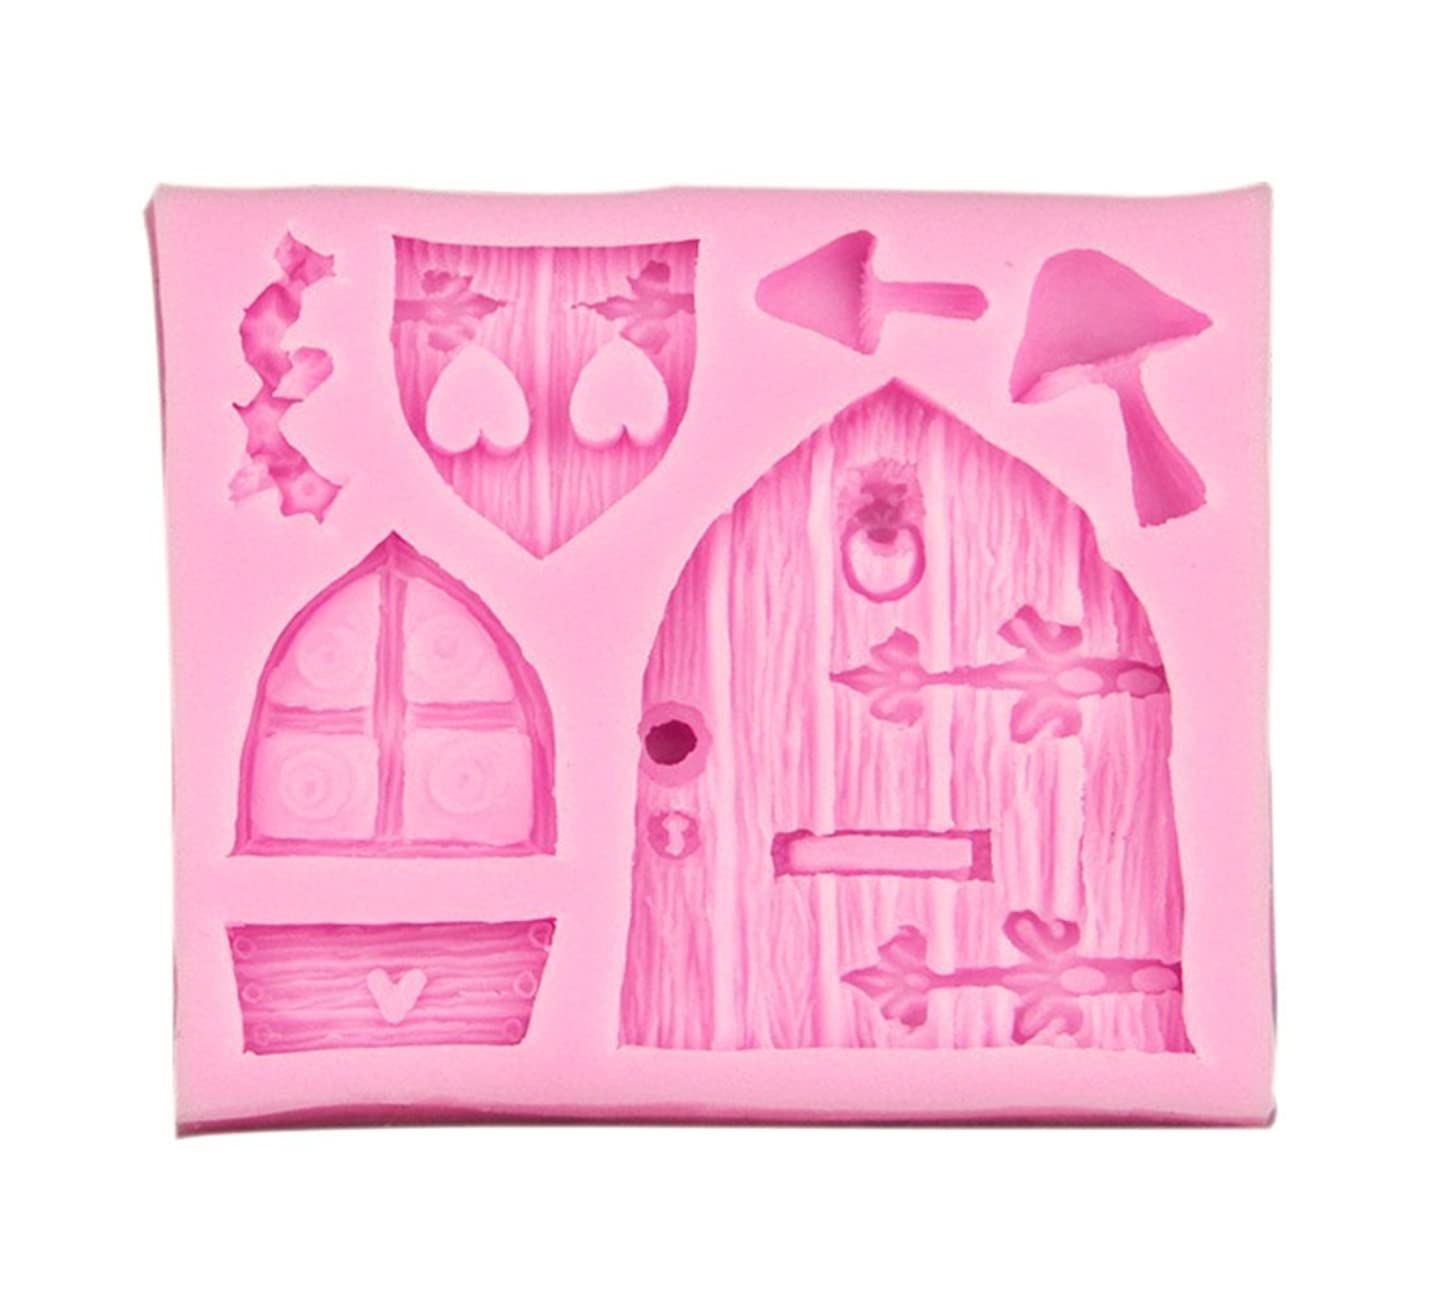 Cake Mould - TOOGOO(R)3D Fairy House Door Silicone Fondant Chocolate Cake Sugarcraft Mould Mold Tool